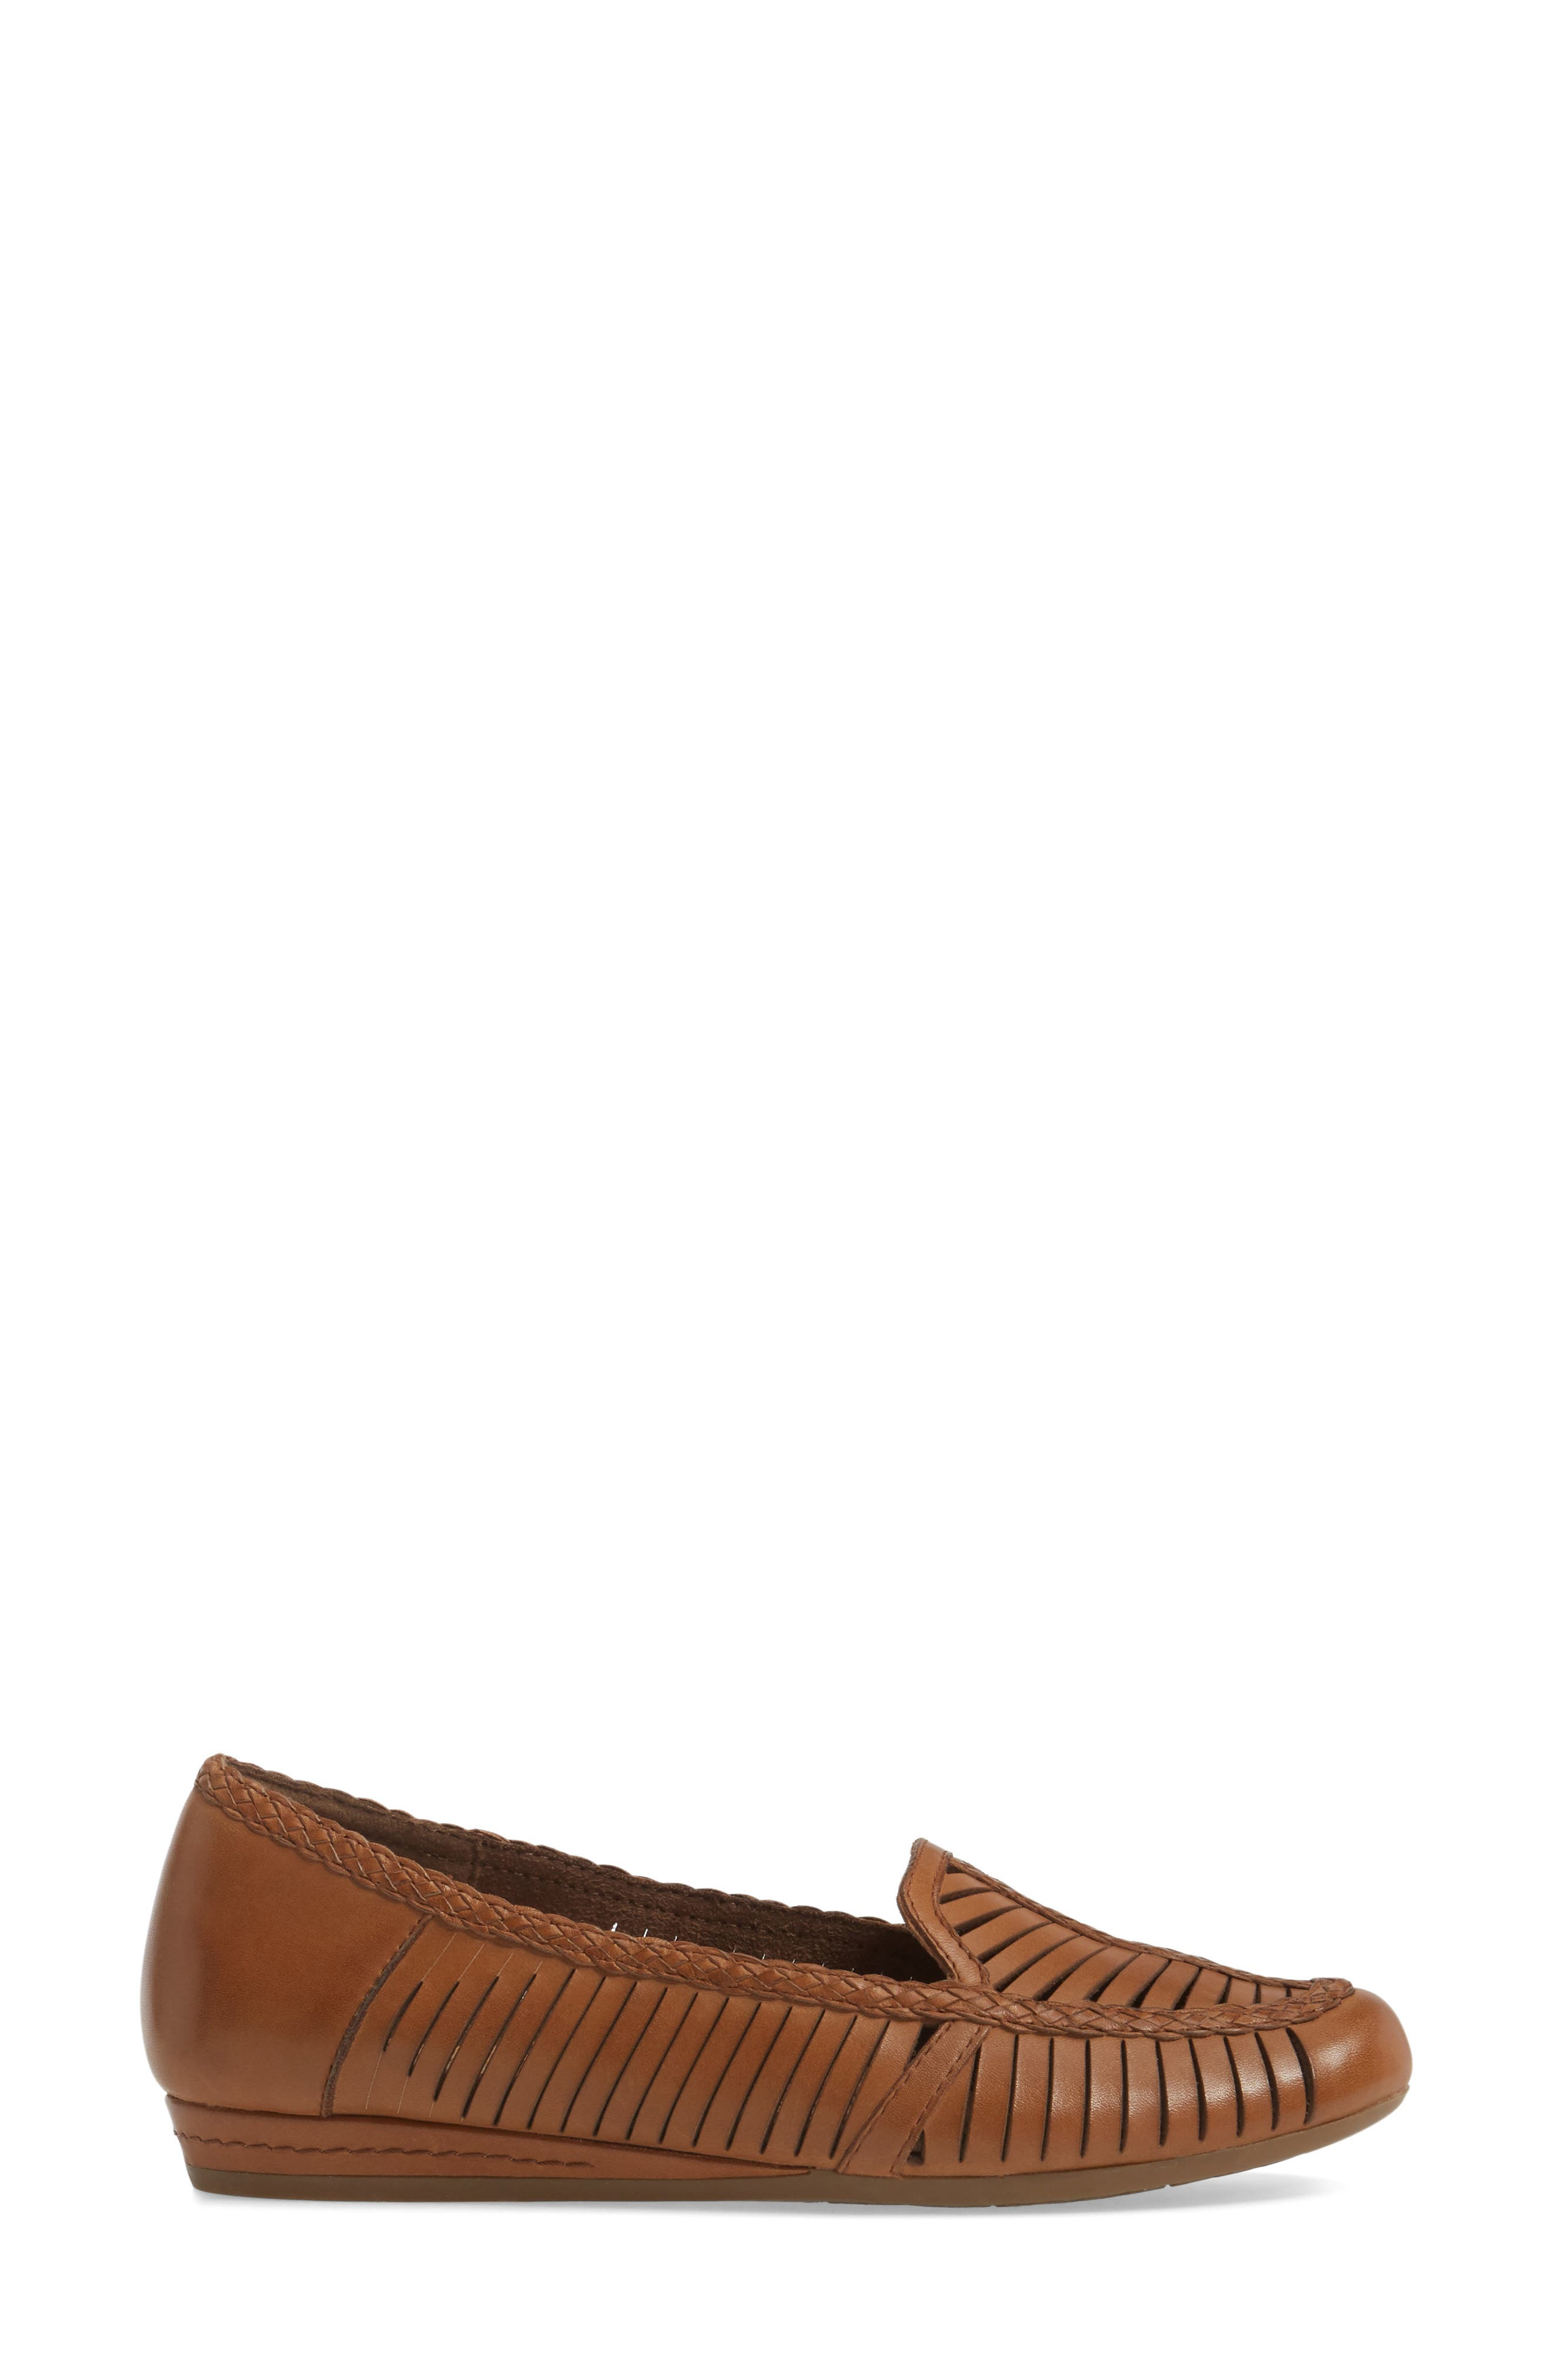 Galway Loafer,                             Alternate thumbnail 3, color,                             Tan Multi Leather